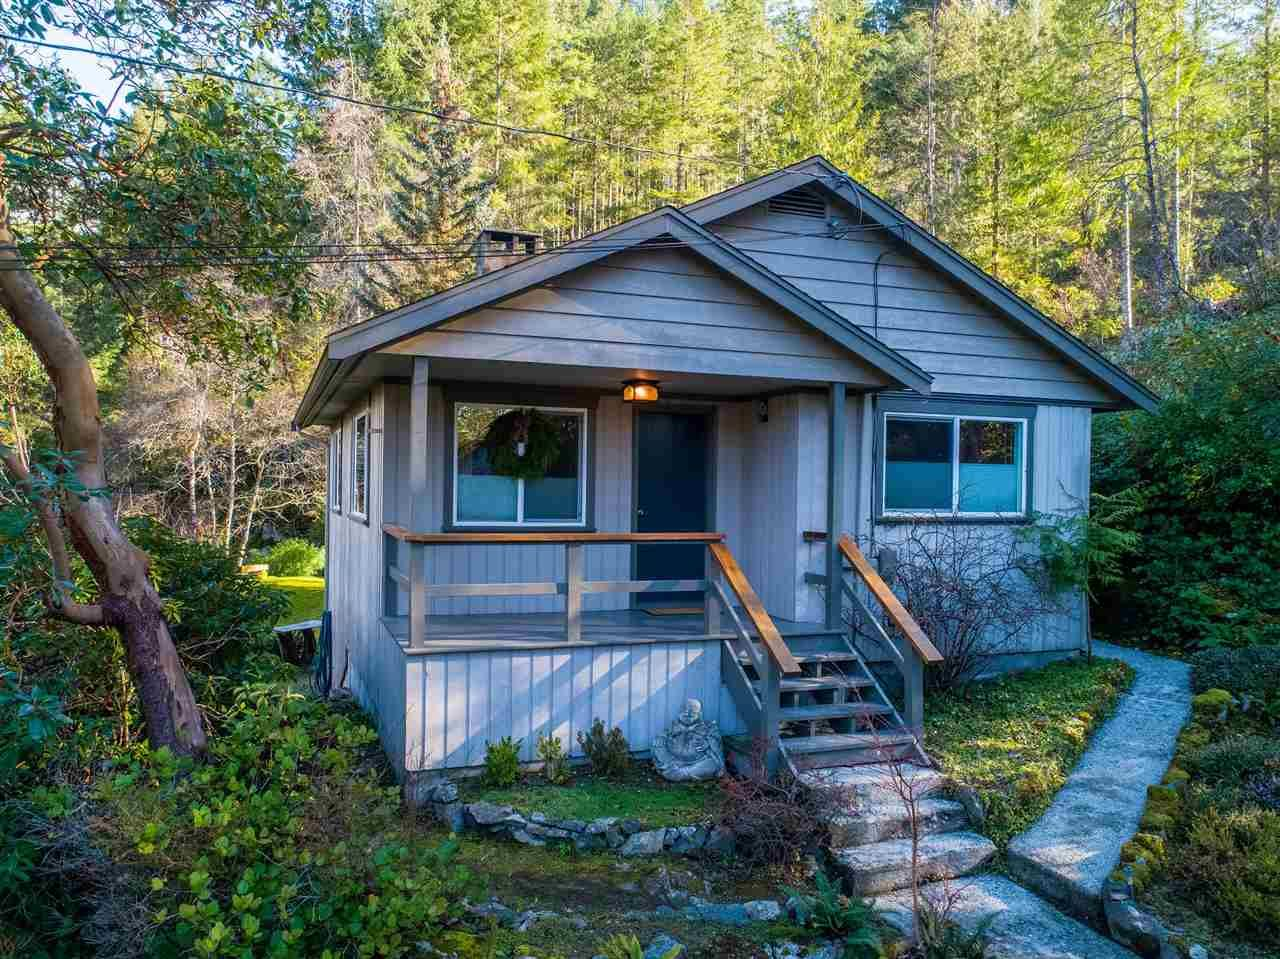 Main Photo: 4130 FRANCIS PENINSULA Road in Madeira Park: Pender Harbour Egmont House for sale (Sunshine Coast)  : MLS®# R2539519